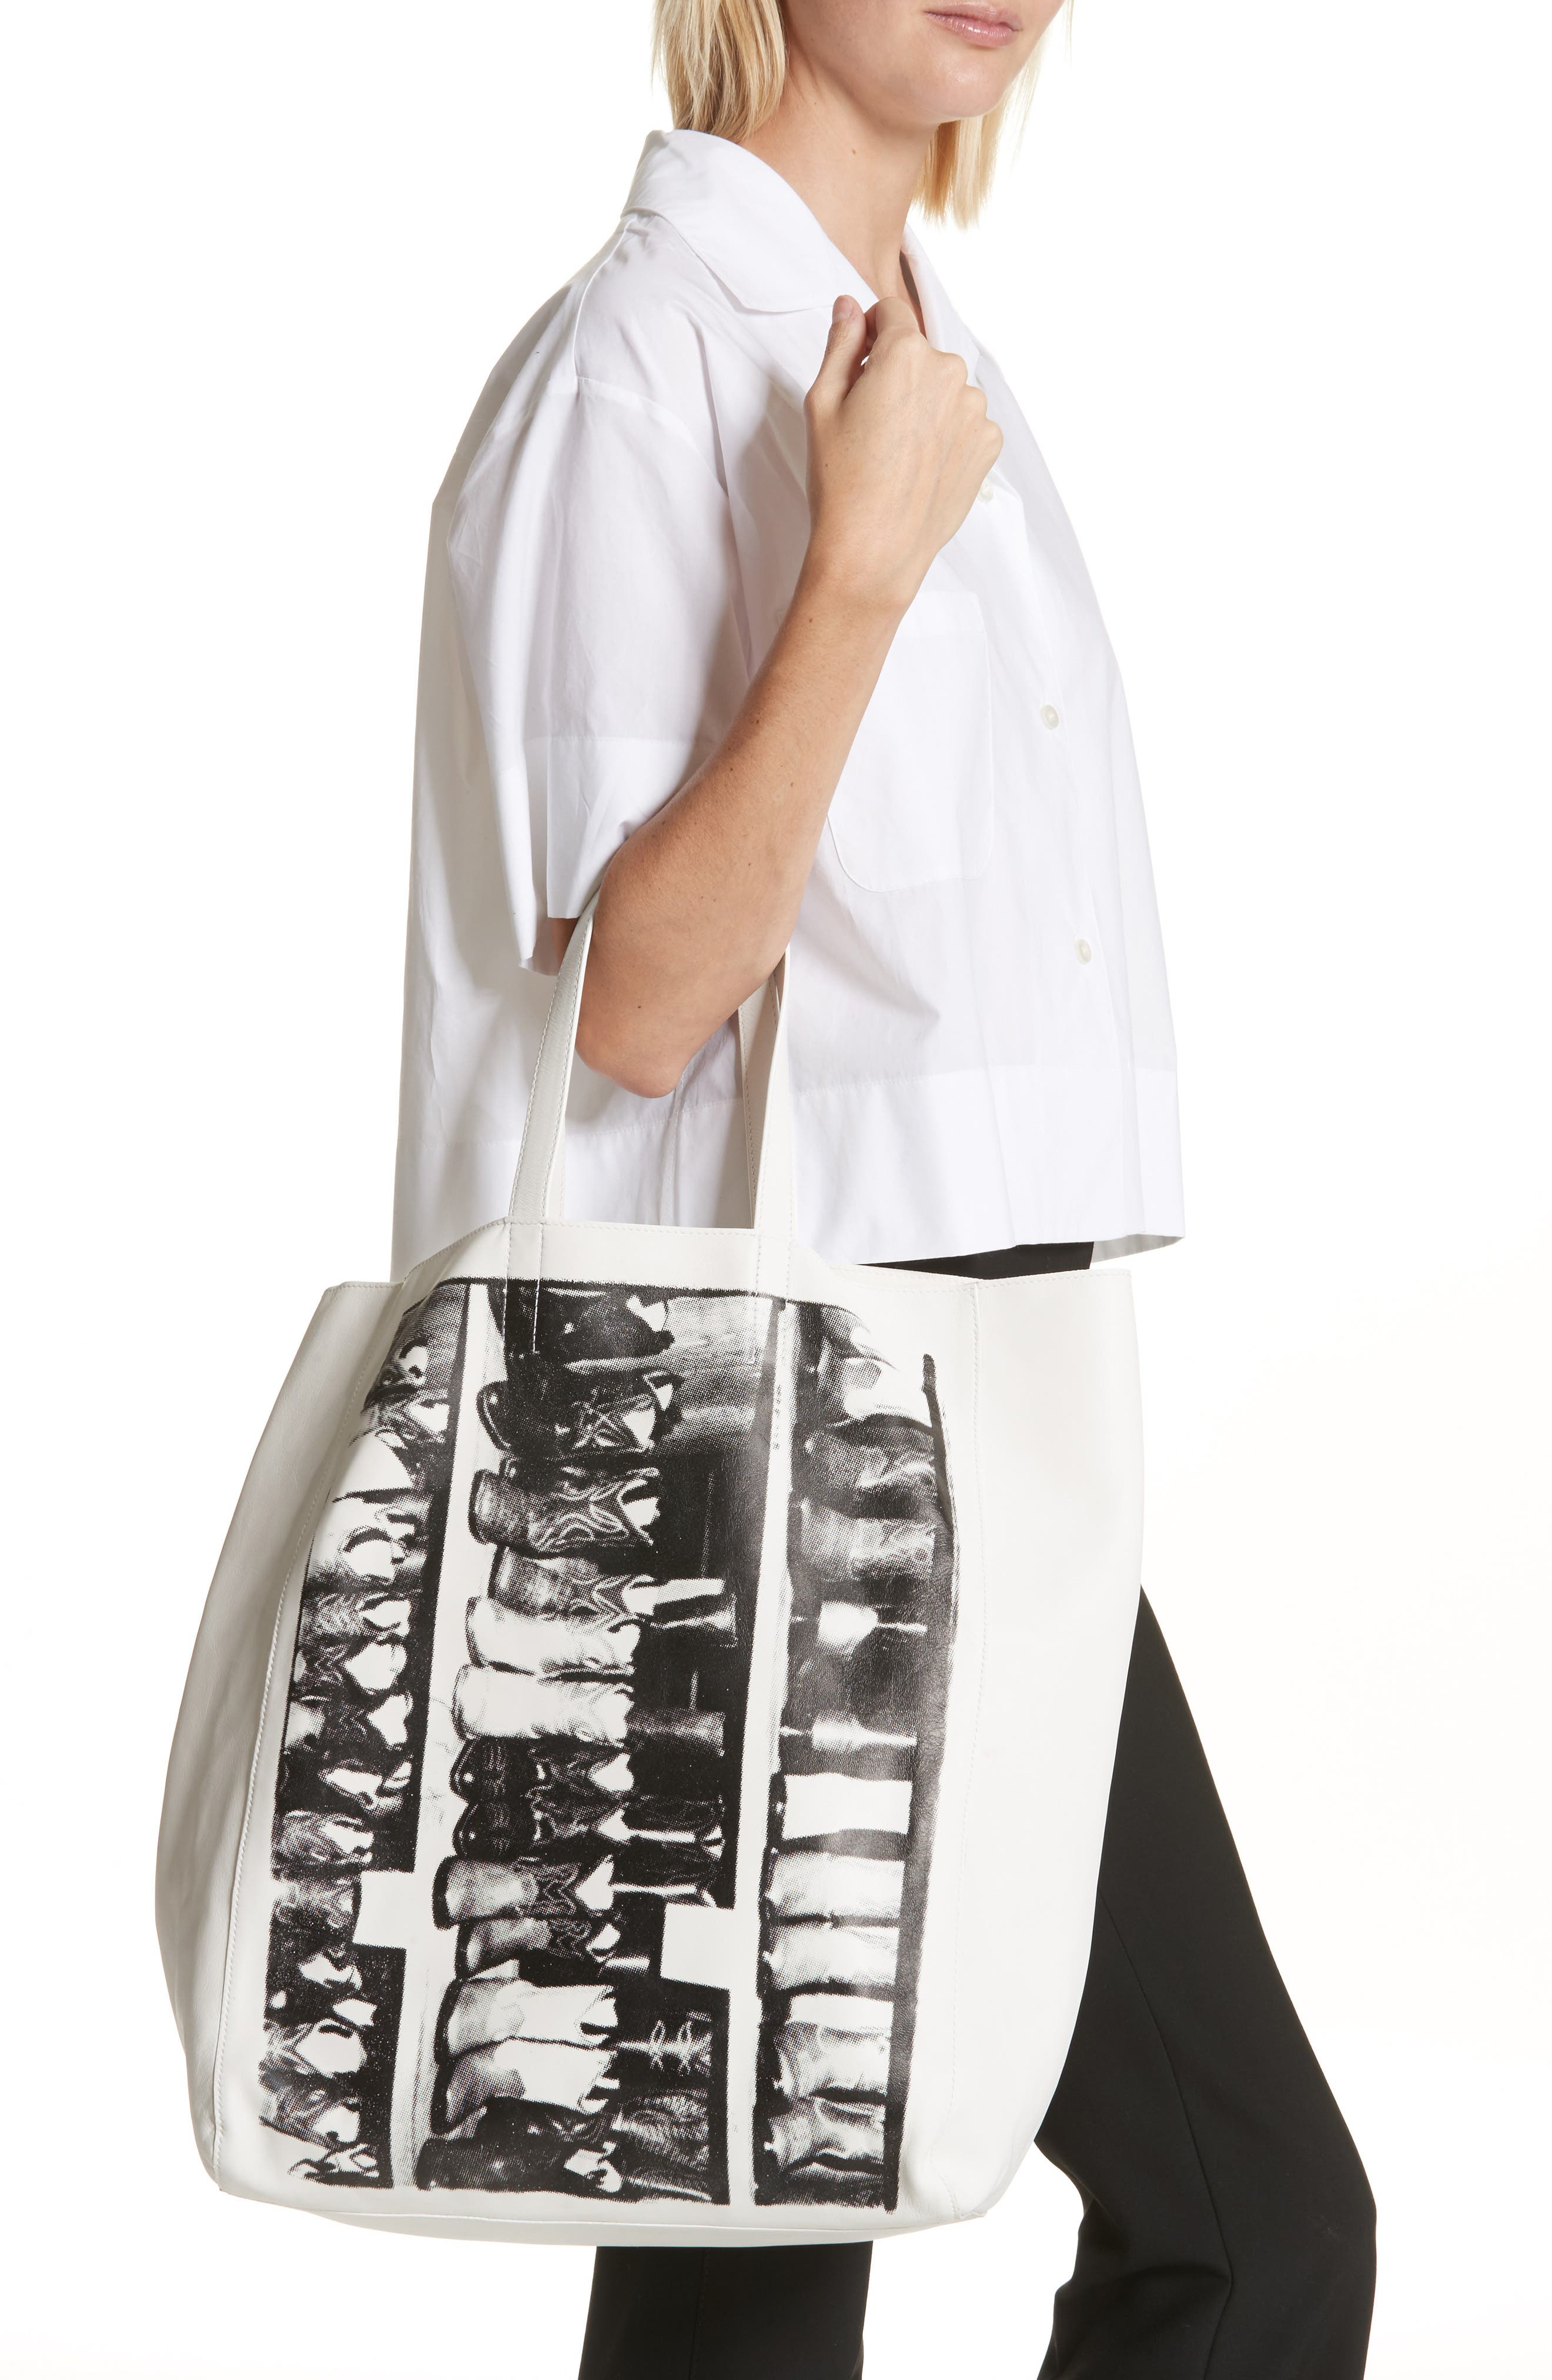 x Andy Warhol Foundation Boots Leather Tote,                             Alternate thumbnail 2, color,                             White/ Black